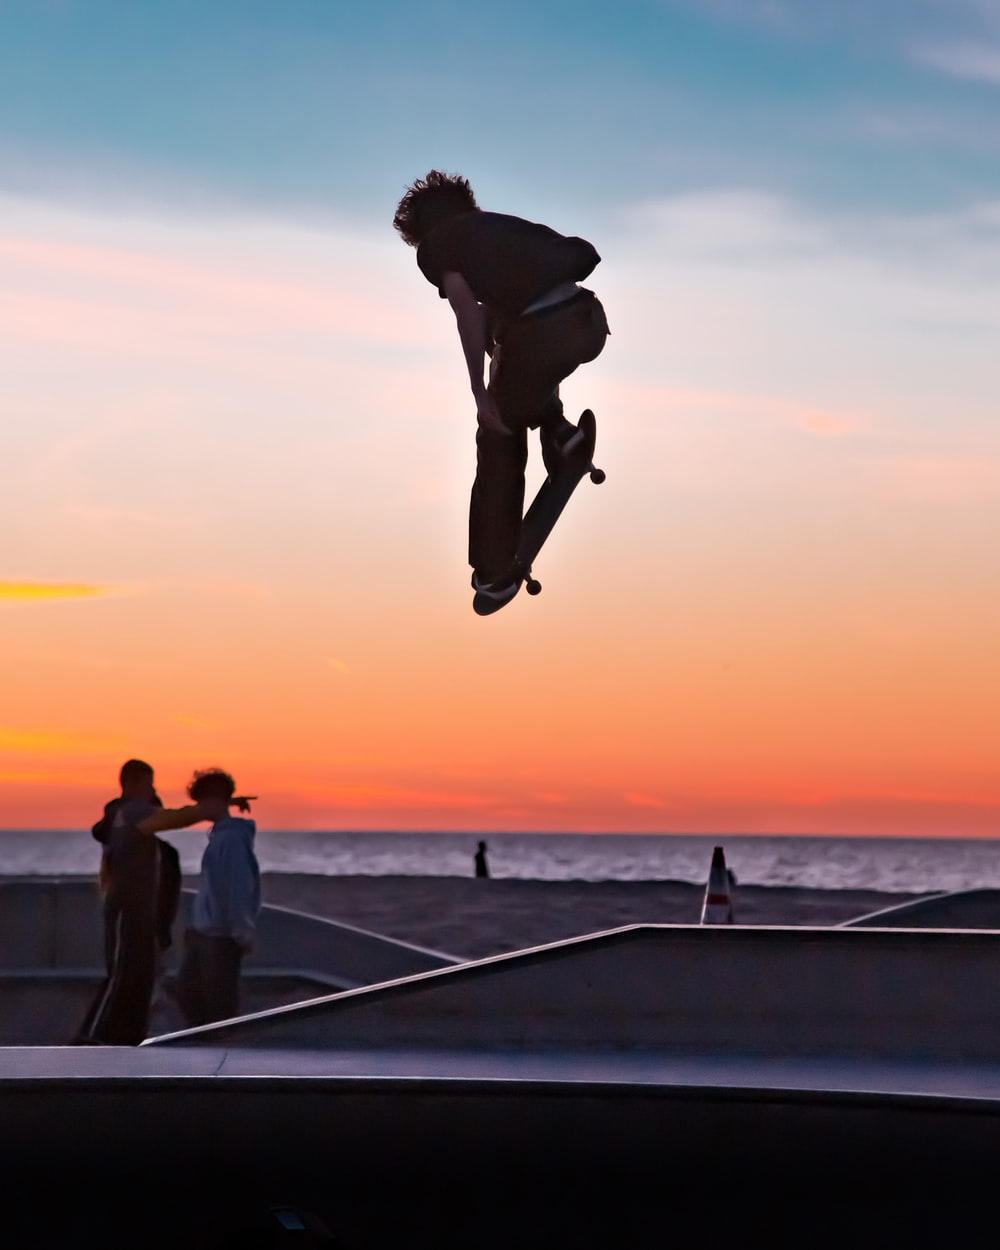 man in black shorts and woman in white shirt jumping on the beach during sunset